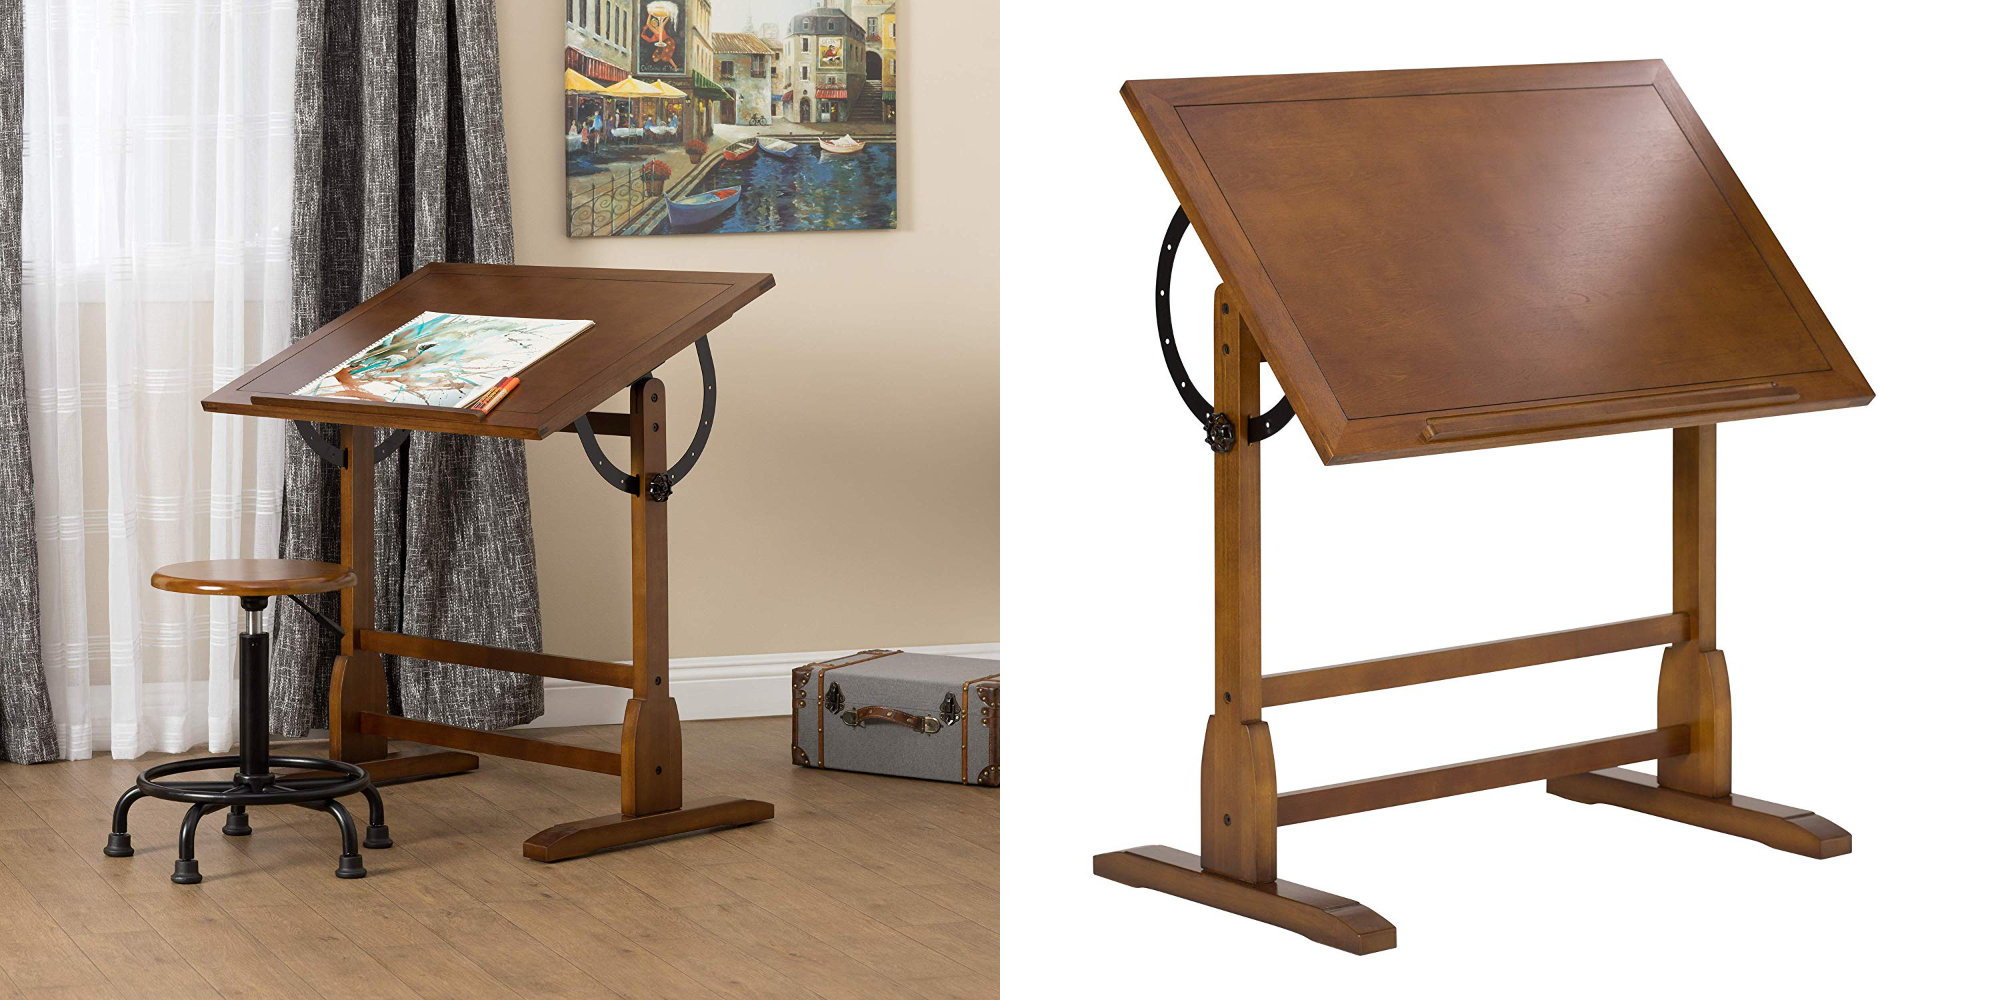 Put iPad Pro & Apple Pencil to work w/ Studio Designs' Vintage Drafting Table: $87 (Reg. $125)